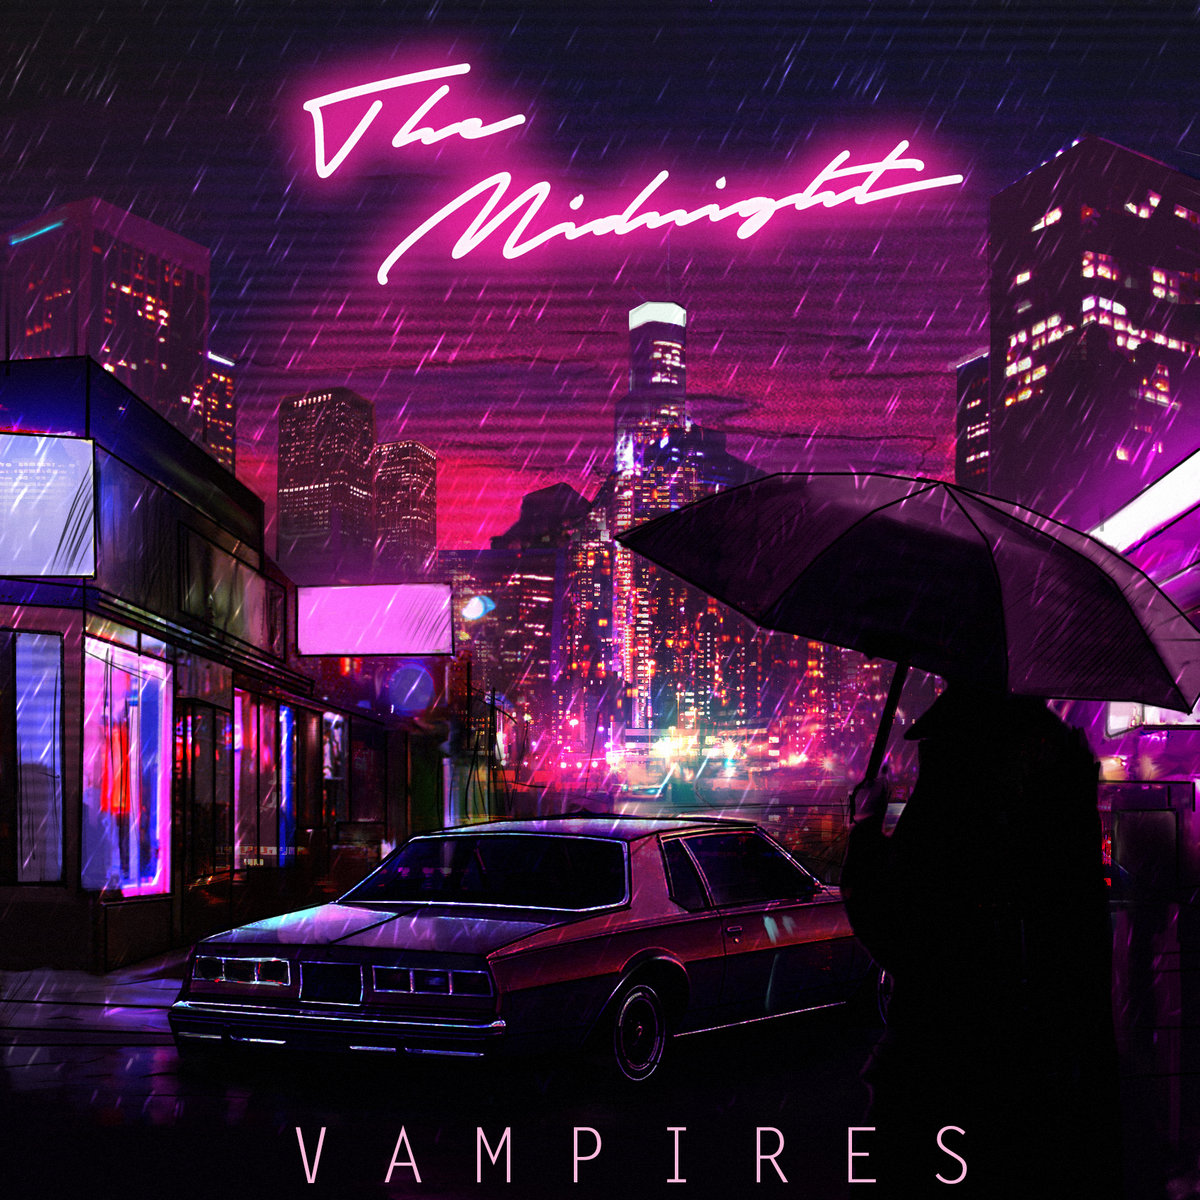 The Cars Band Cover Wallpaper Vampires The Midnight